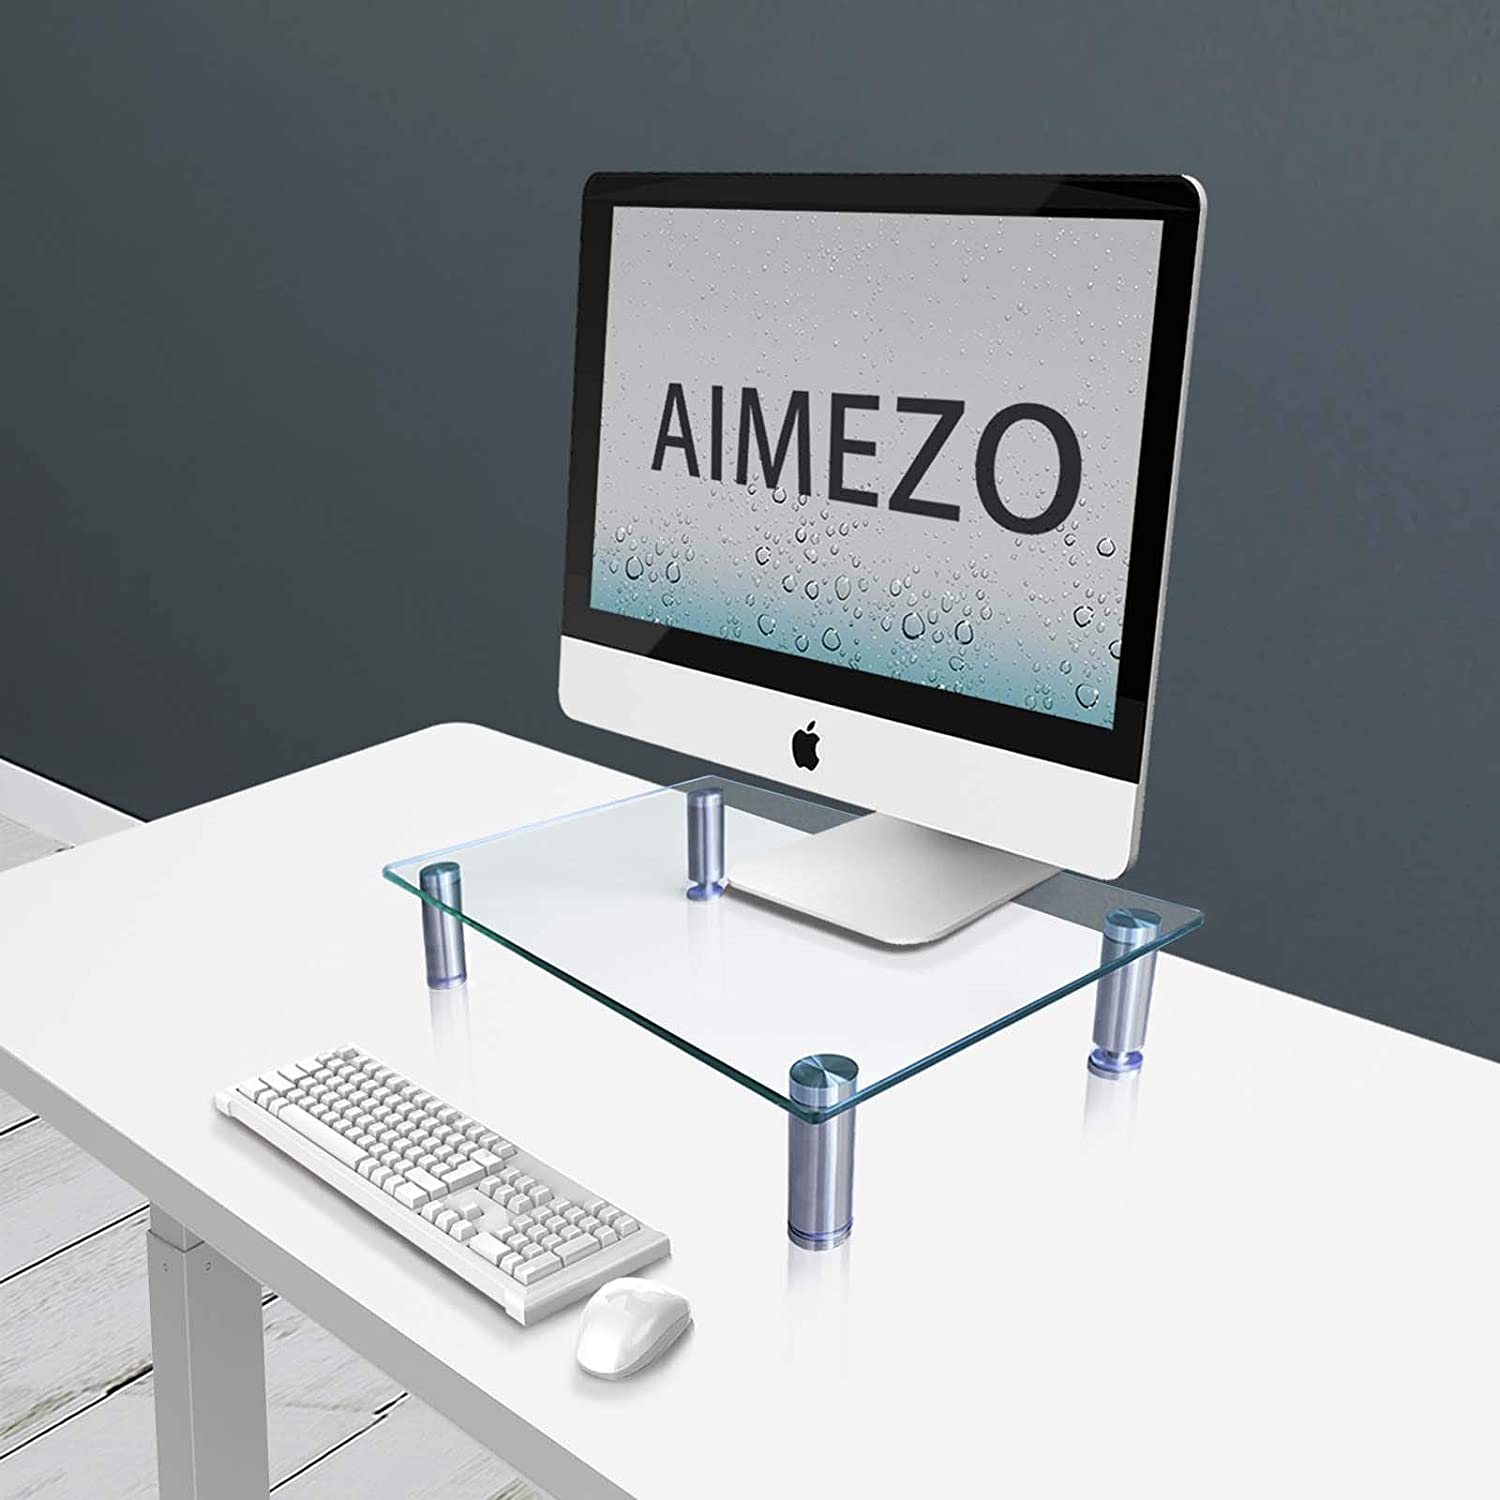 AIMEZO Clear Tempered Glass Computer Monitor Stand with Height Adjustable, Desktop Risers for Computer Monitors, Laptop, Printer, Notebook,Xbox One,Space for Storage Underneath